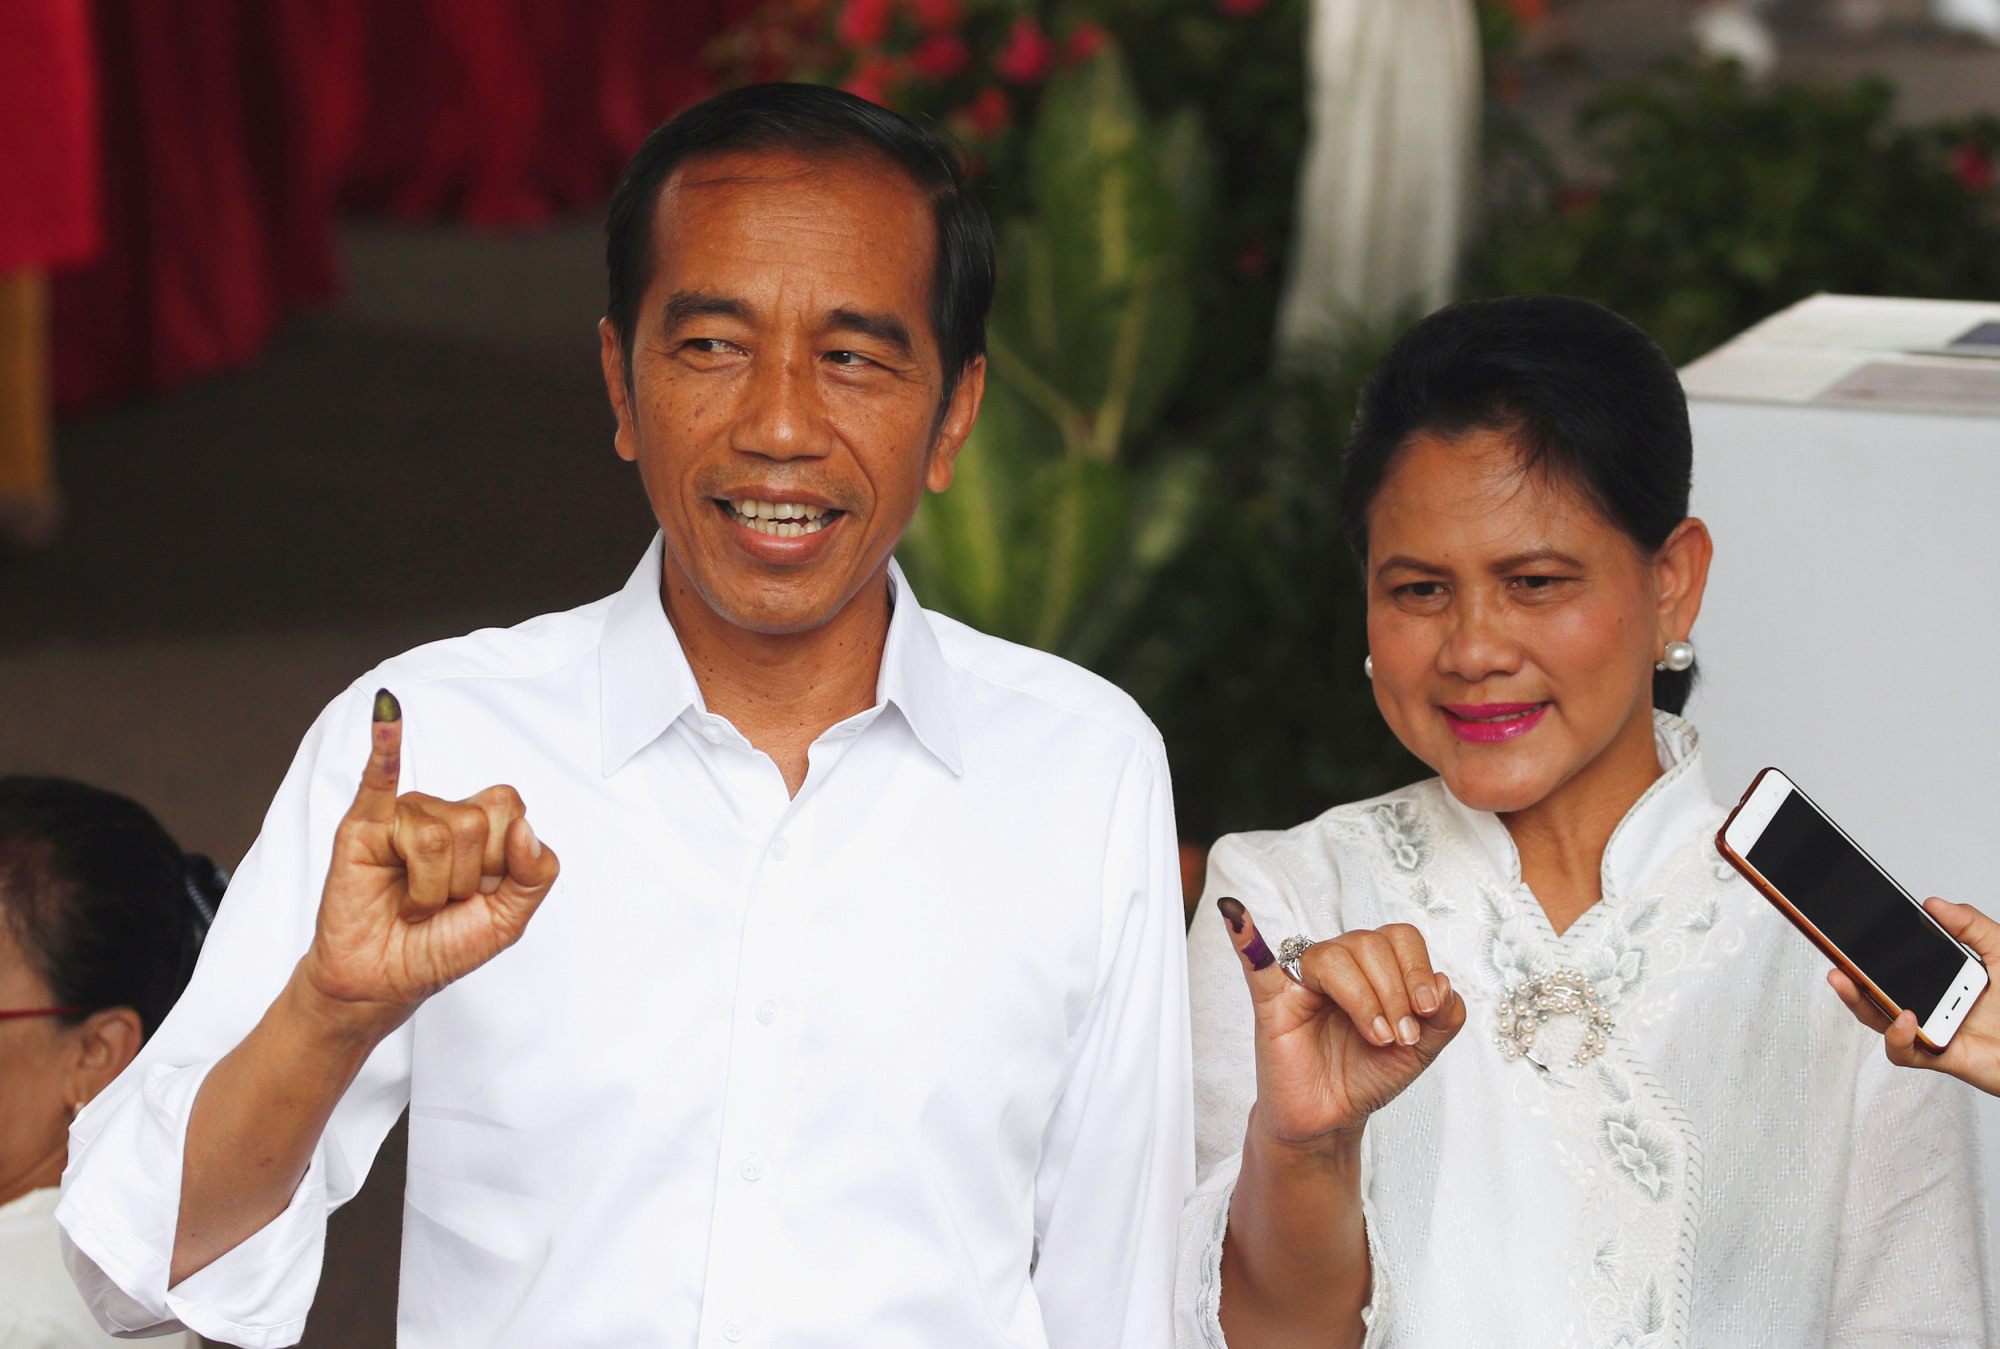 Indonesian President Joko Widodo and first lady Iriana Joko Widodo show their ink-stained fingers after casting their ballots during elections in Jakarta, Indonesia, on Wednesday. | REUTERS